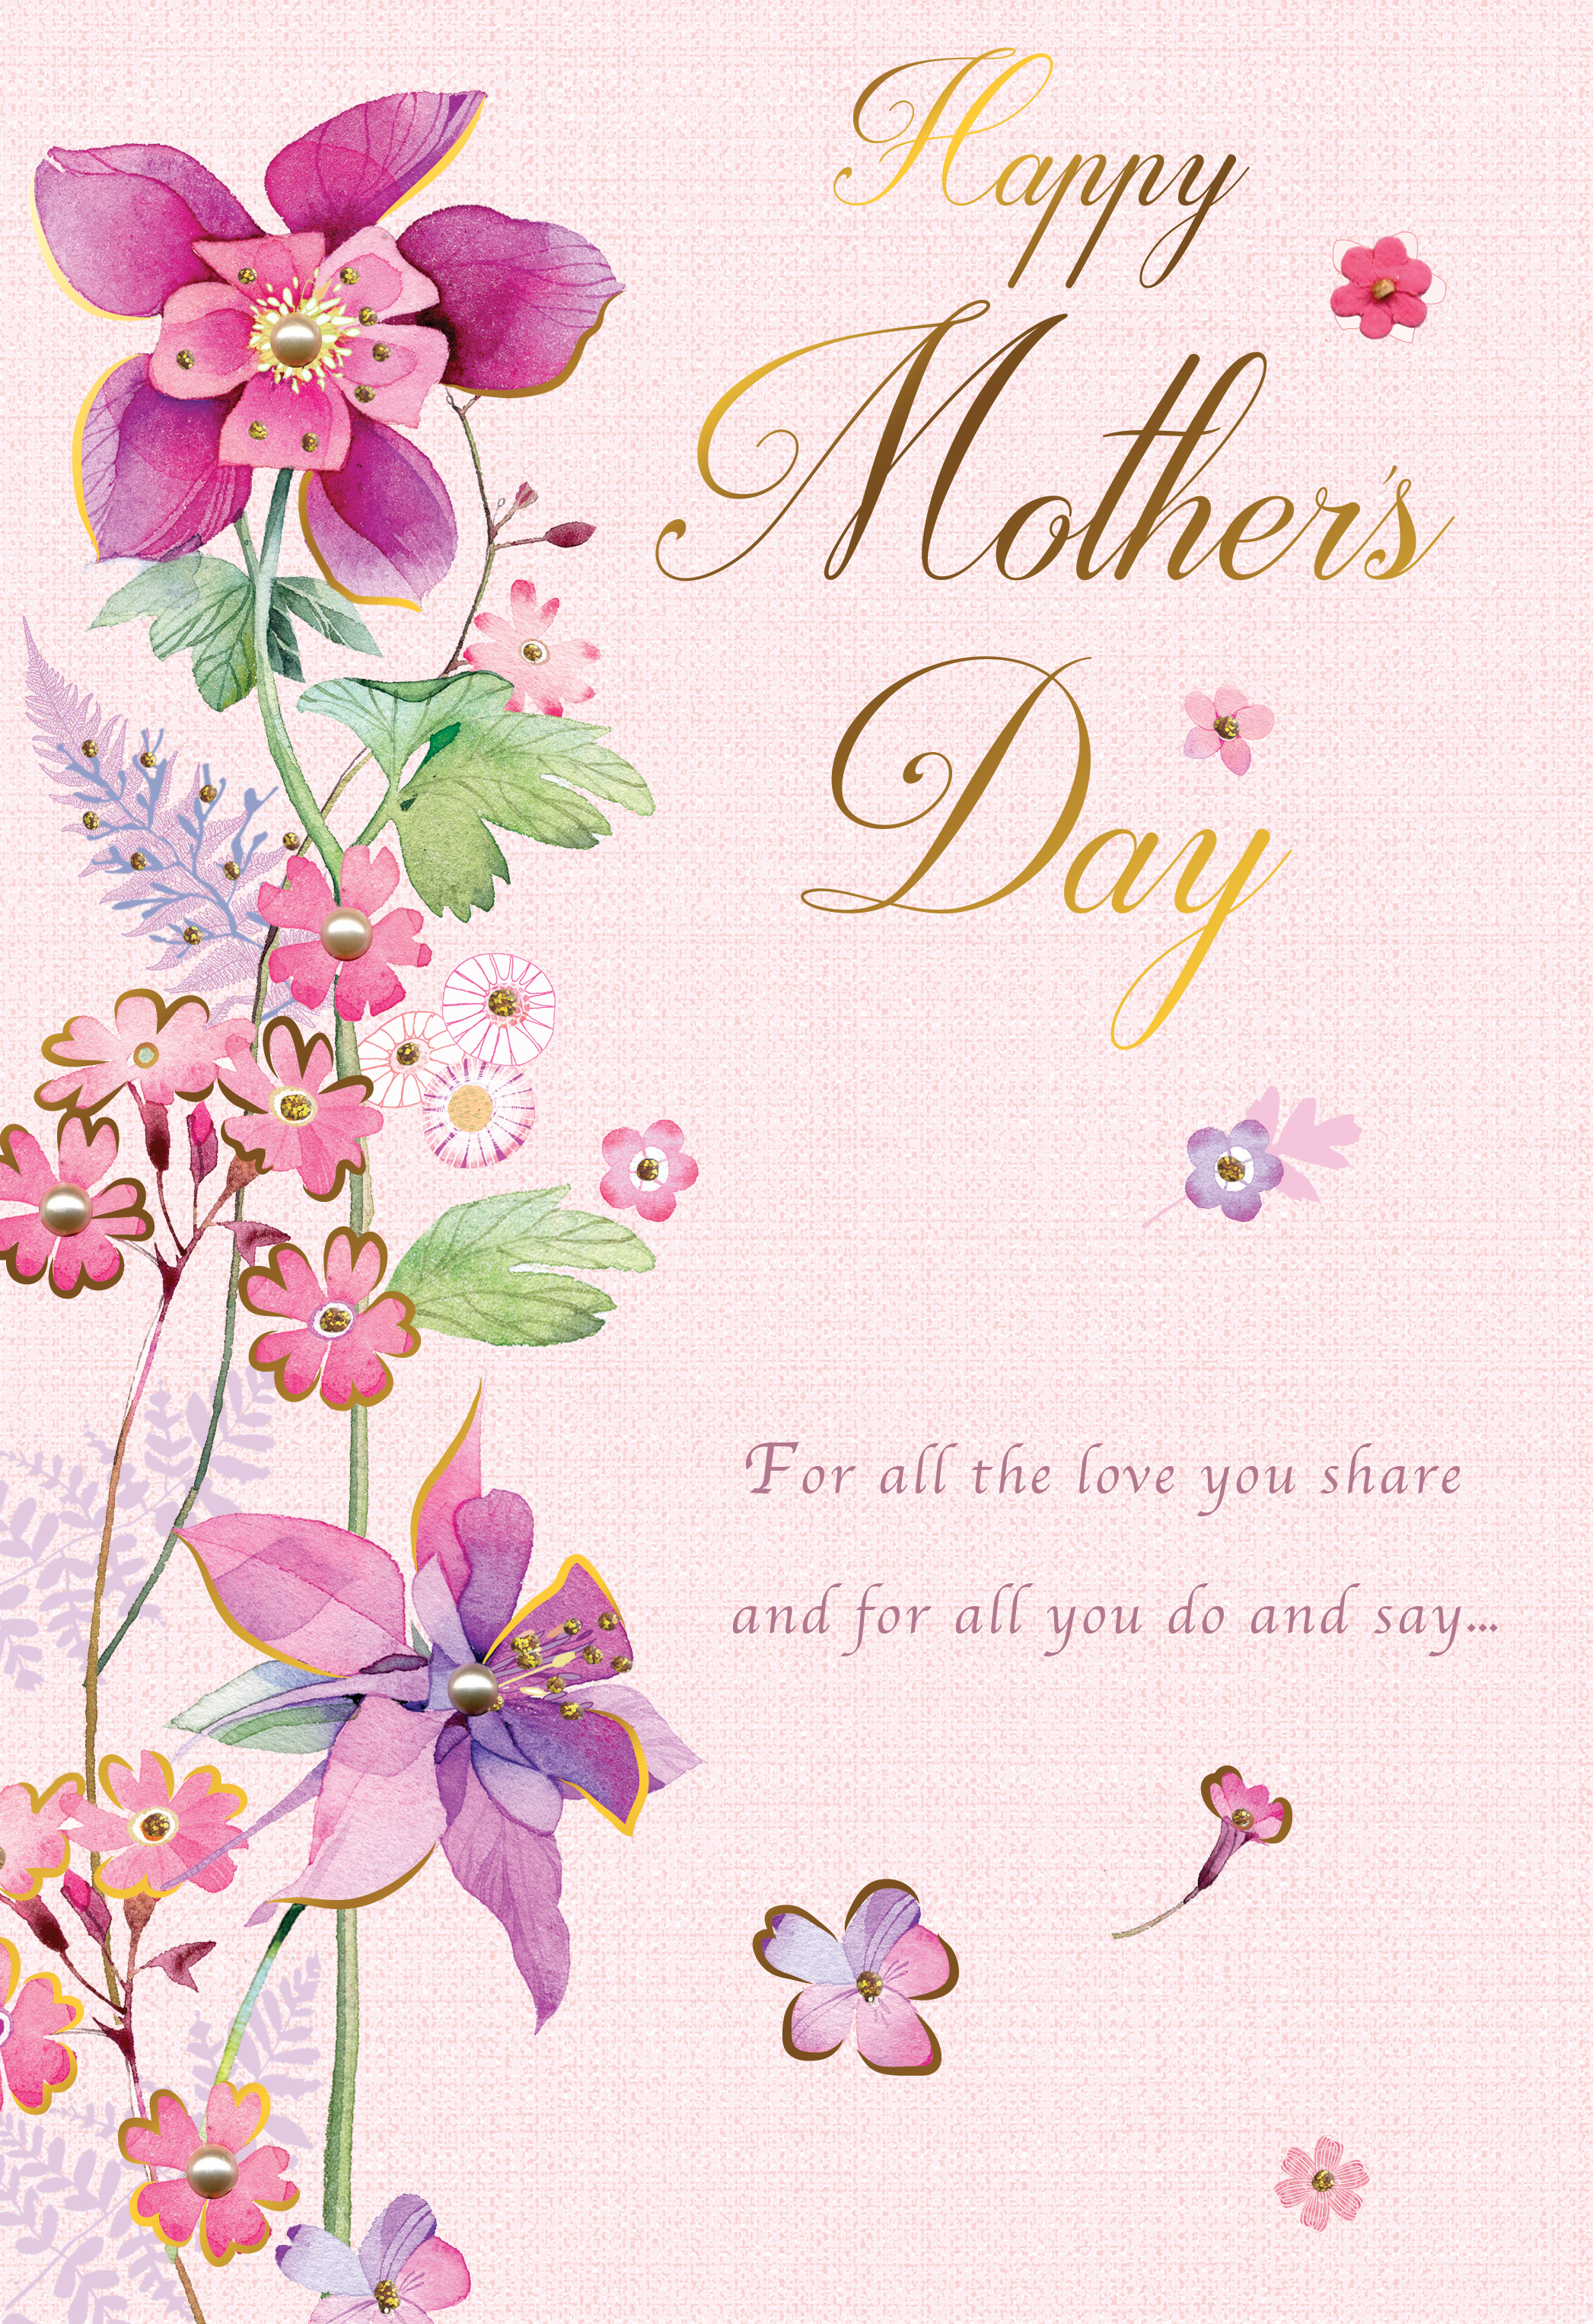 My Lovely Granny Happy Mothers Day Card Quality Greeting Cards